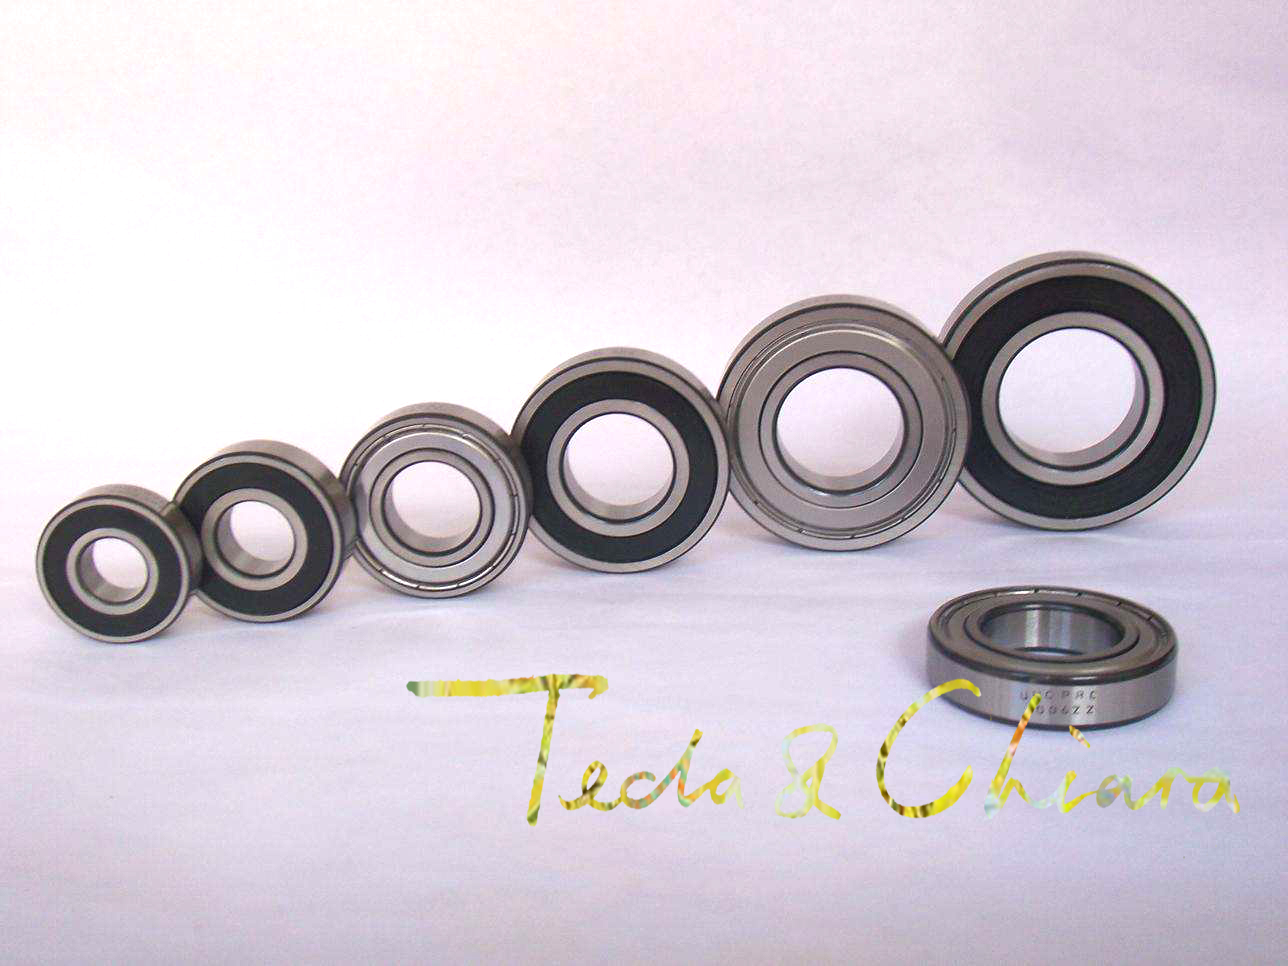 Bearings 10pcs 1lot 603 603zz 603rs 603-2z 603z 603-2rs Zz Rs Rz 2rz Deep Groove Ball Bearings 3 X 9 X 5mm Strengthening Sinews And Bones